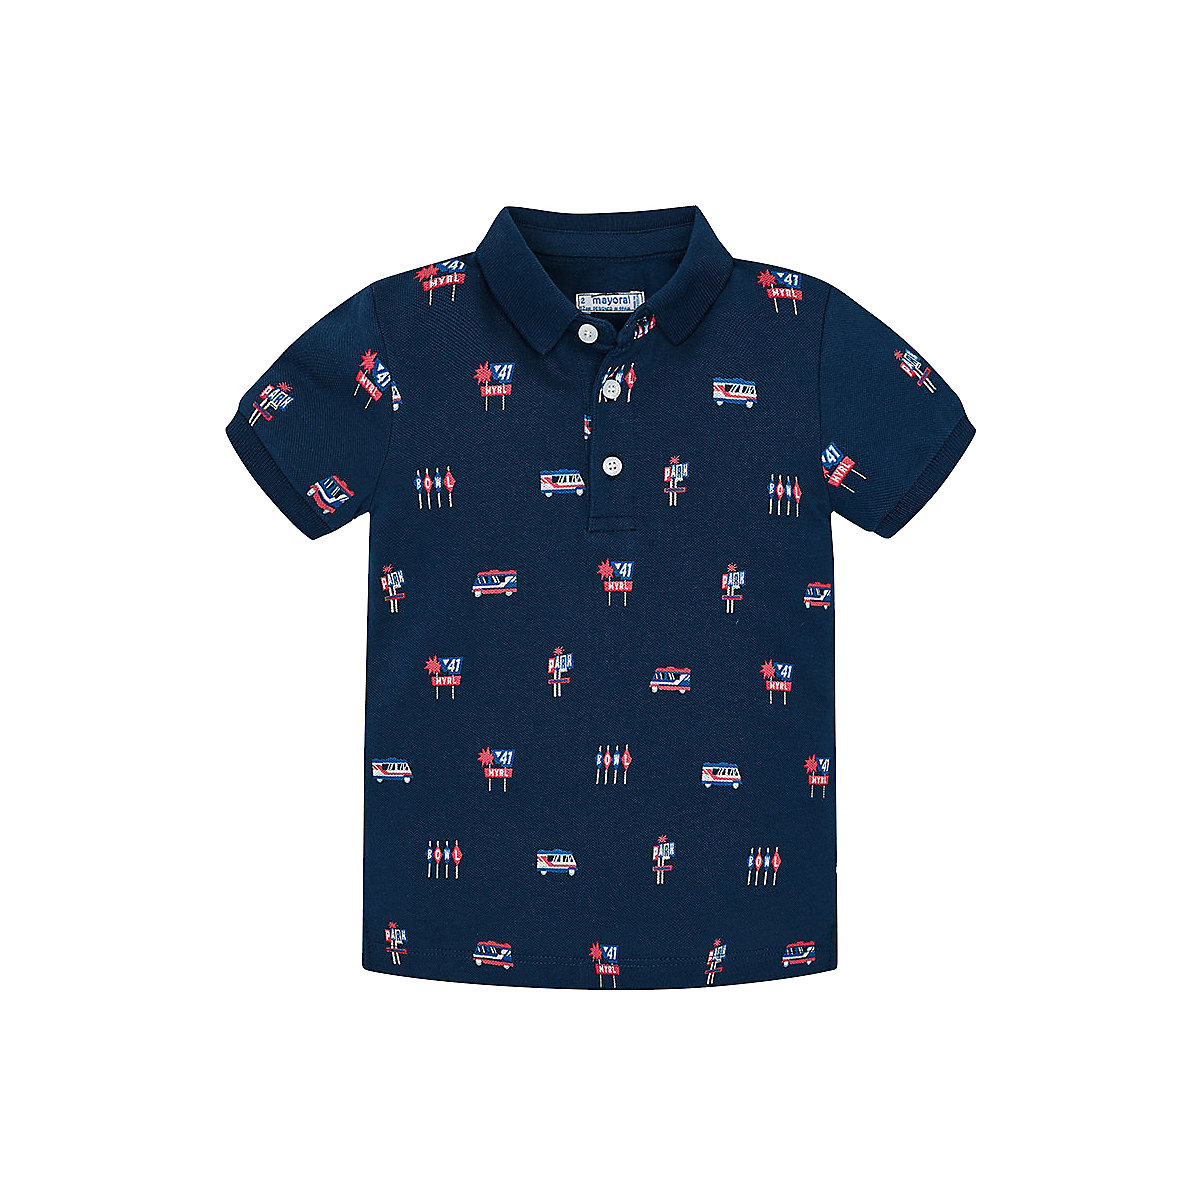 T-Shirts MAYORAL 10681388 Children sClothing T-shirt with short sleeves polo shirt for boys and girls